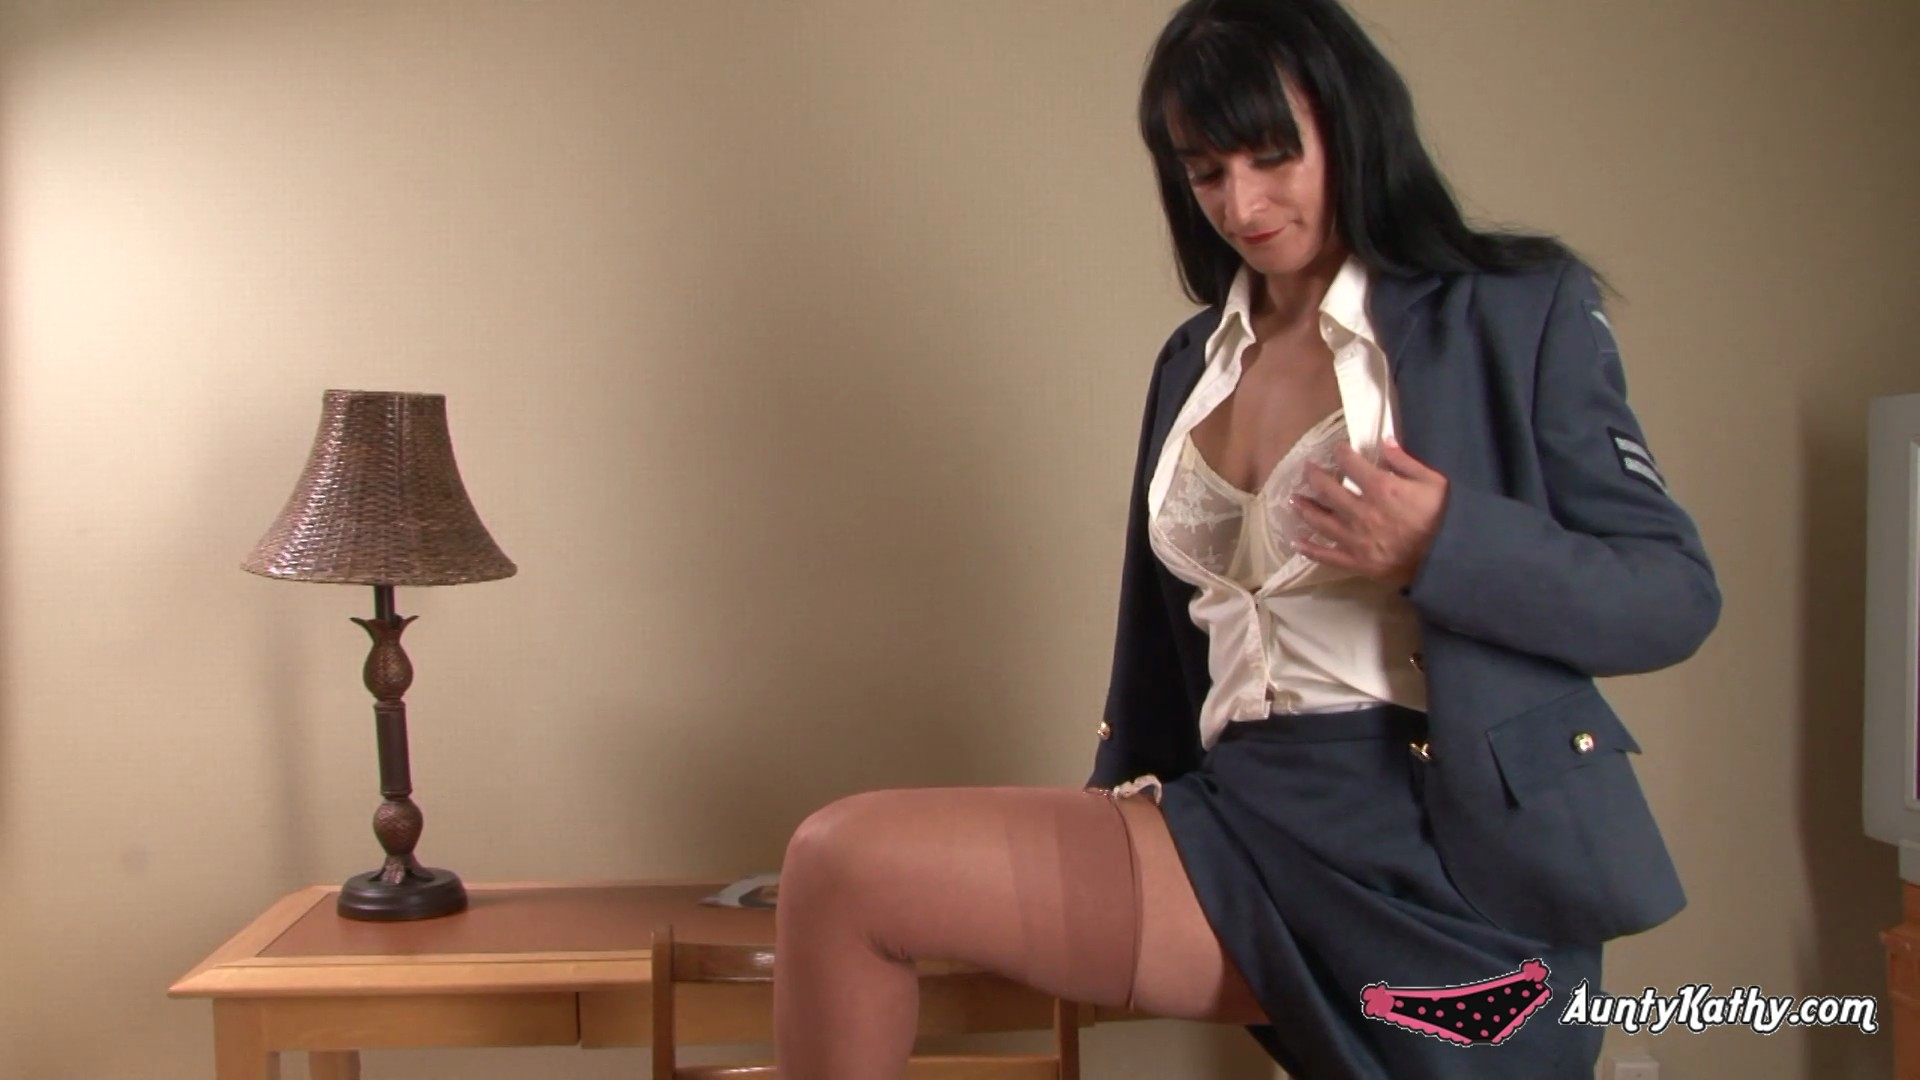 big ass aunty kathy straighten up and fly right | the stocking girls